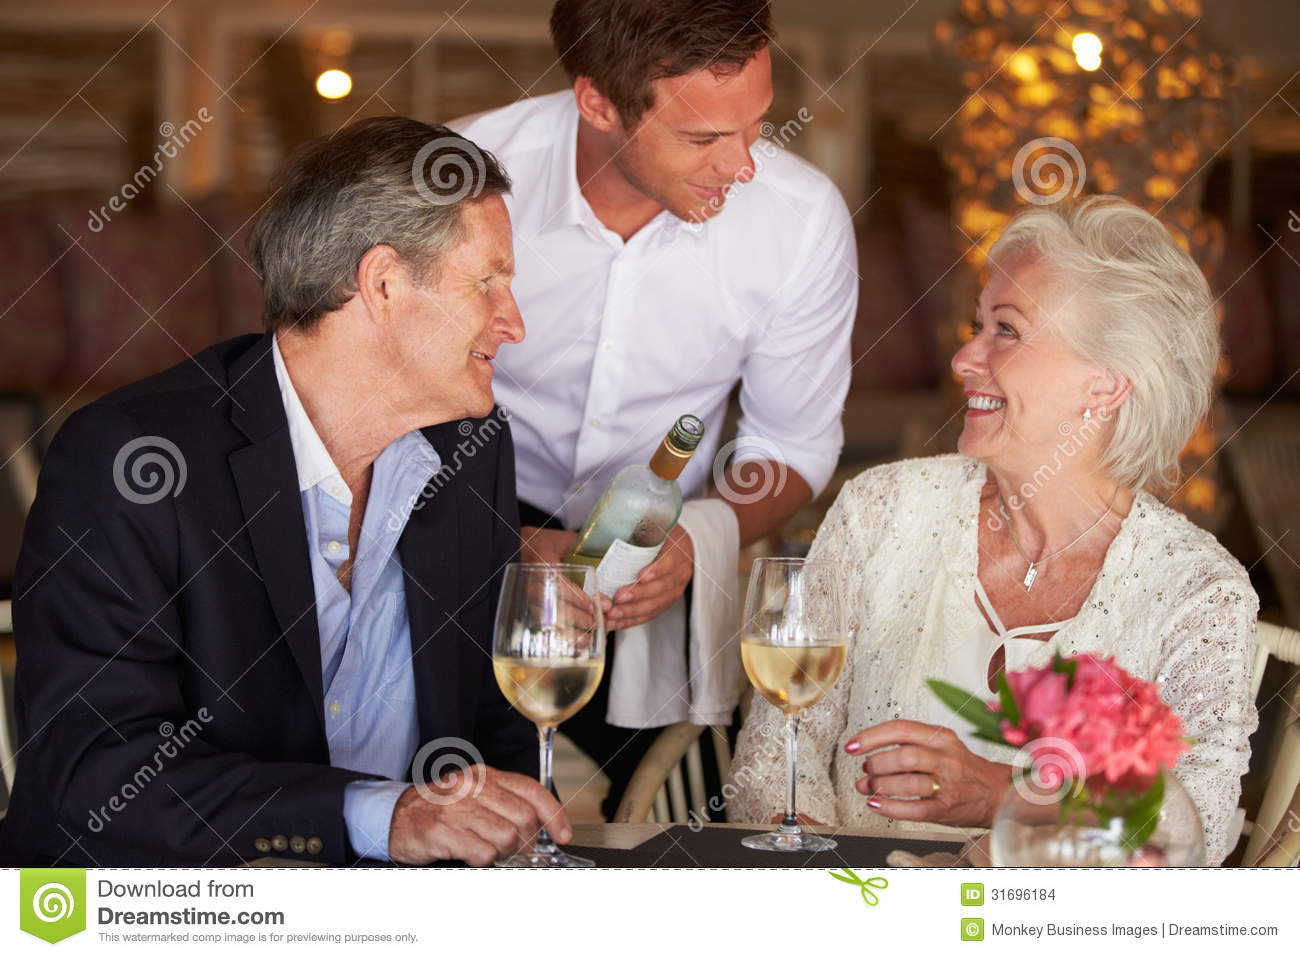 Download Waiter Serving Wine To Senior Couple In Restaurant Stock Photo - Image of retired, food: 31696184